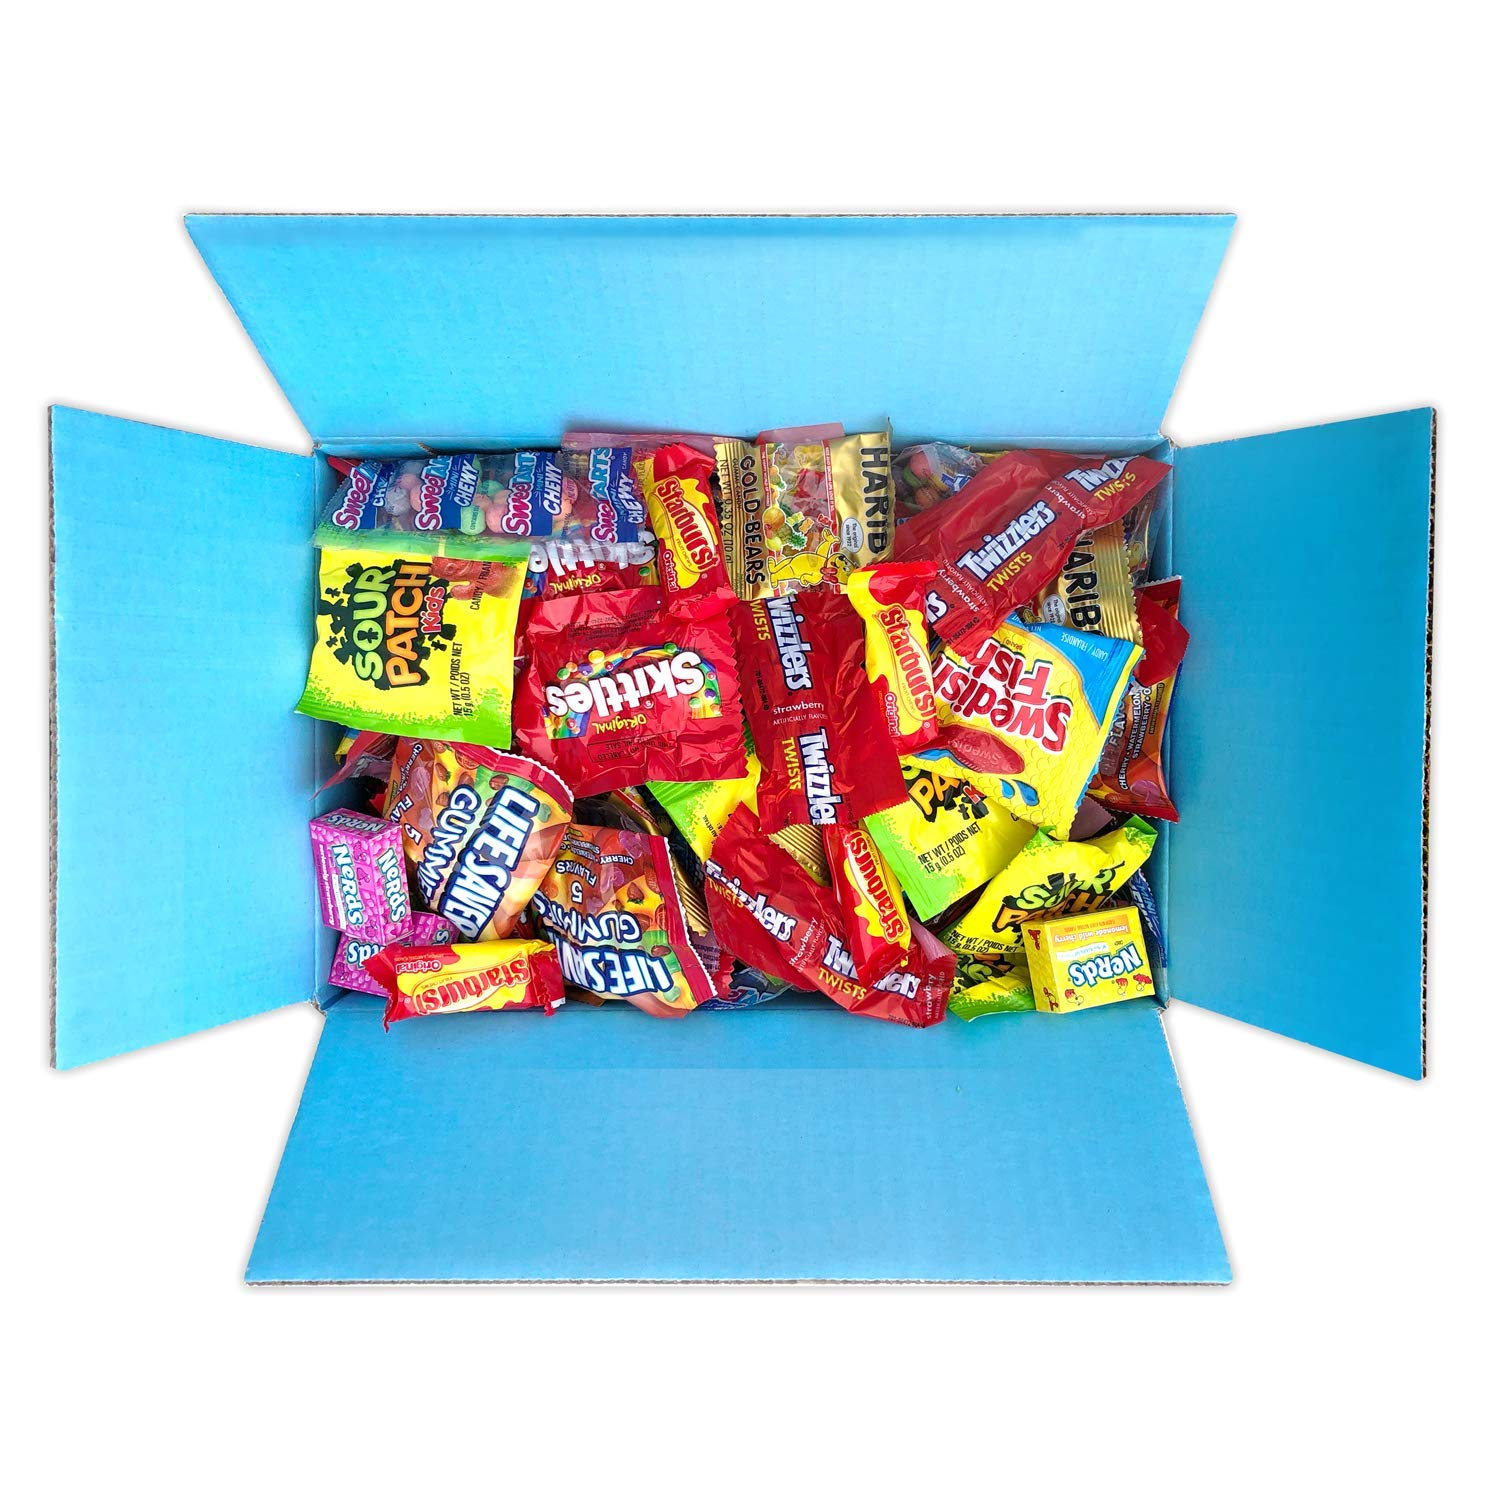 Candy Party Mix Bulk Bag of Skittles Swedish Fish Nerds Haribo Gummy Sour Patch Twizzlers Starburst Mike and Ike Variety Fun Peppermints n' more! by Variety Fun Net wt (288 oz) by Custom Varietea (Image #3)